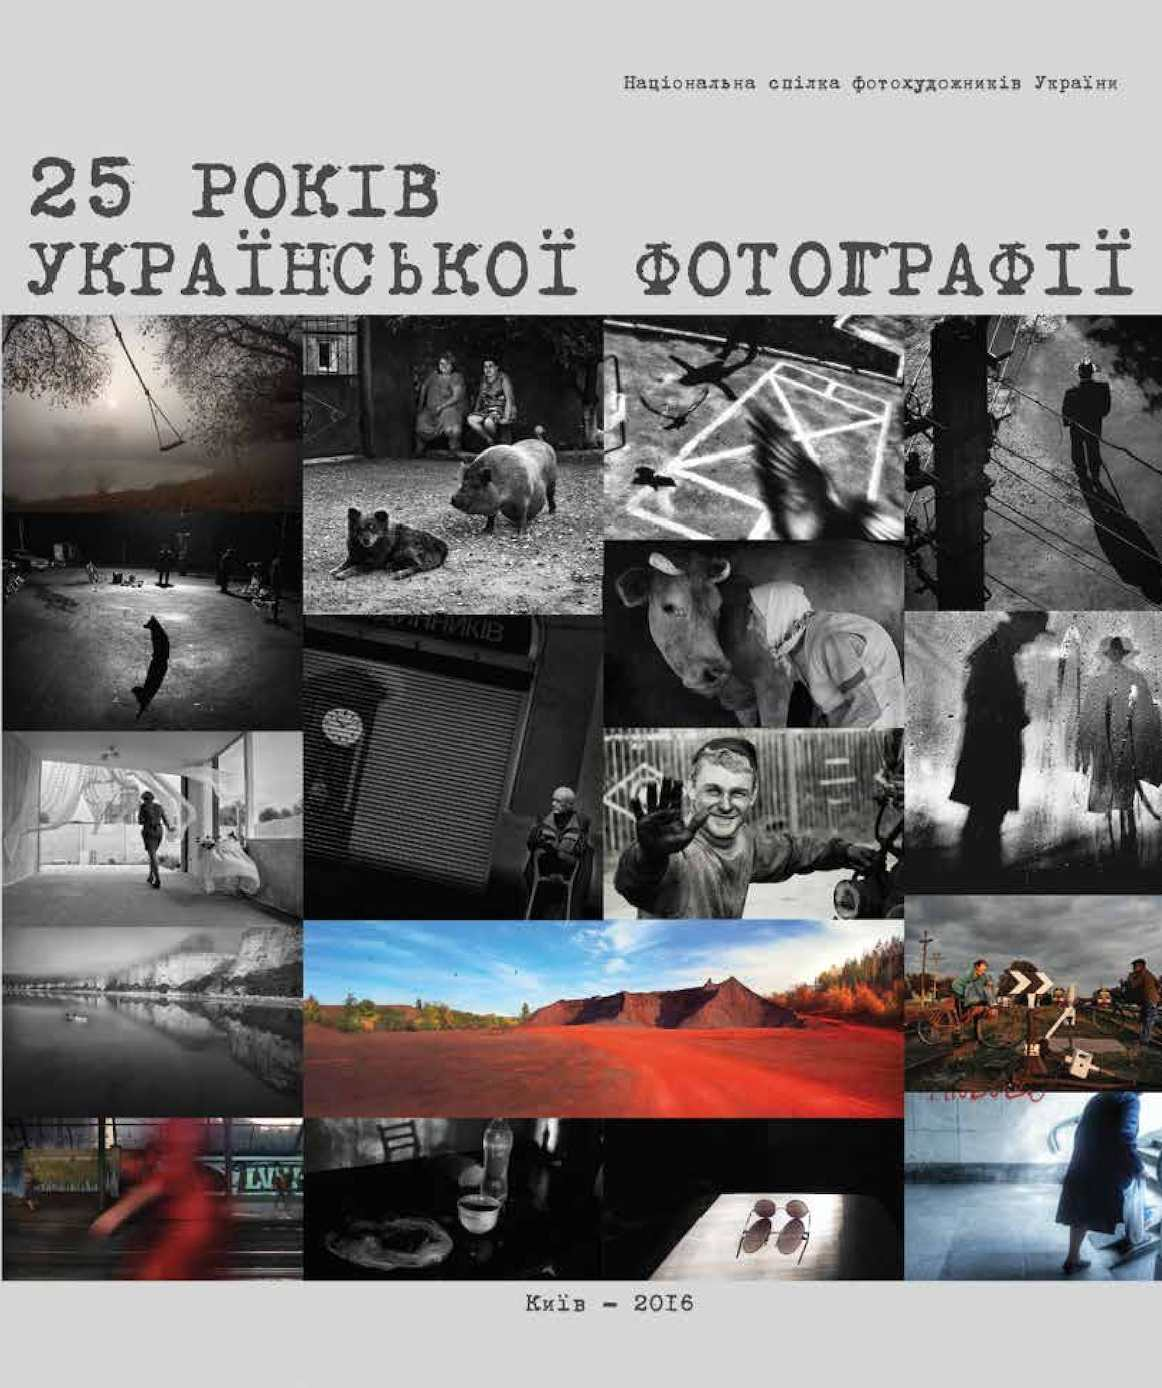 25 Rokiv Ua Photo